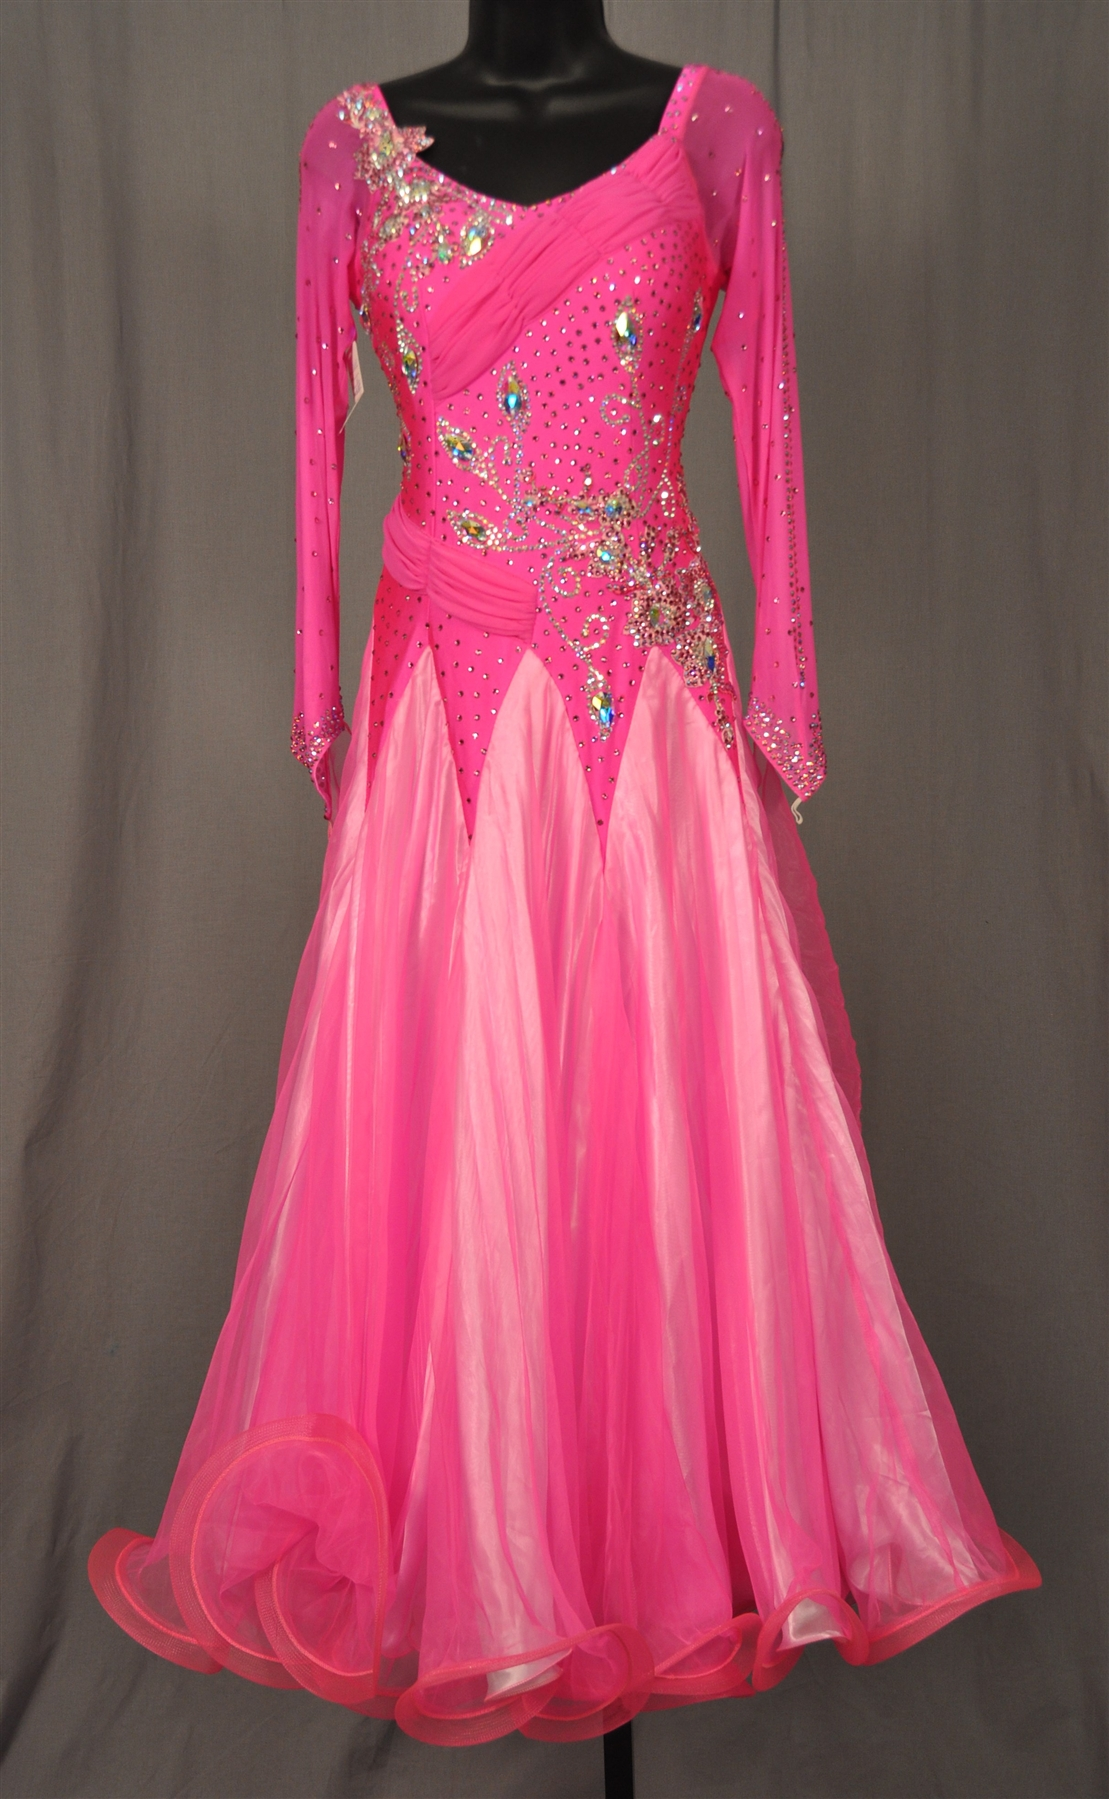 Long Key Hole Mesh Sleeves Hot Pink Ballroom Dress